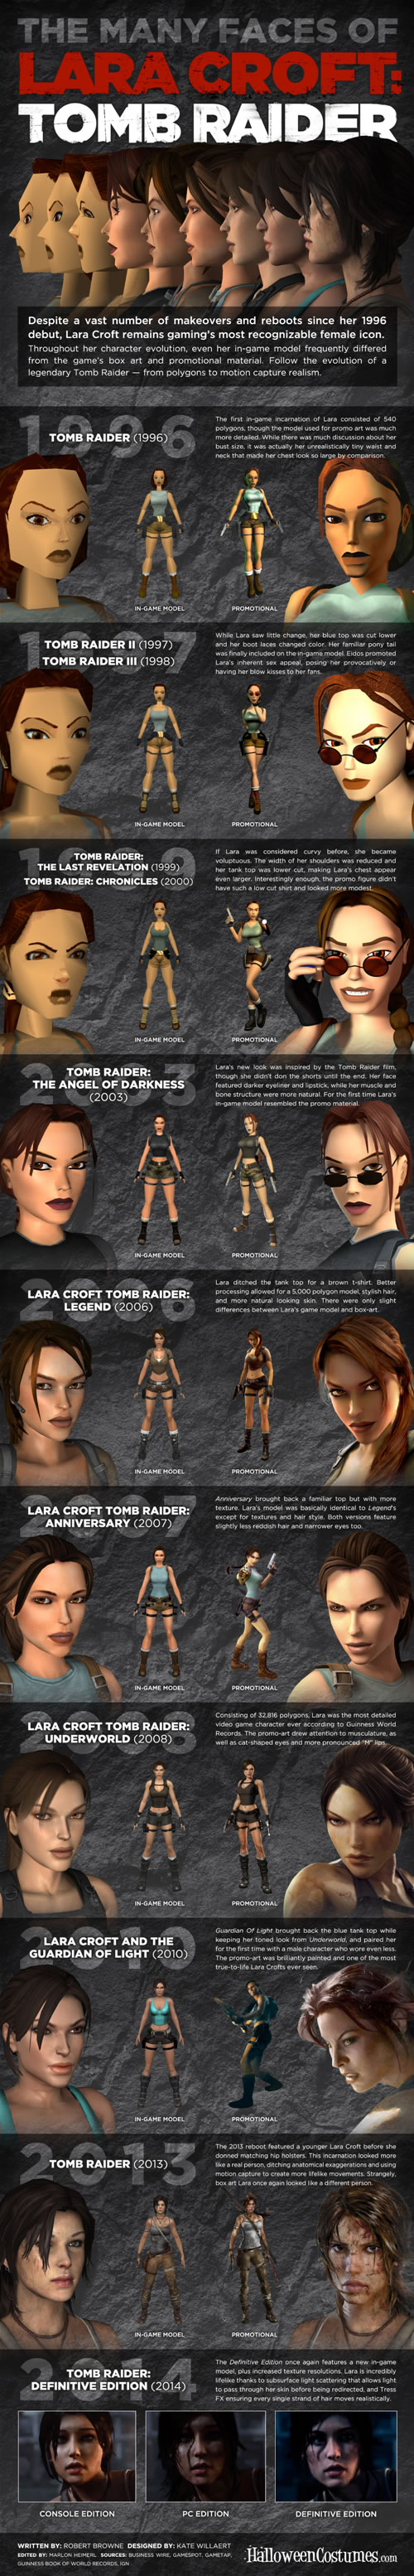 Evolution of「Tomb Raider」see Laura go from Barbie doll to realistic proportions in just under 2 decades! </sarcasm>